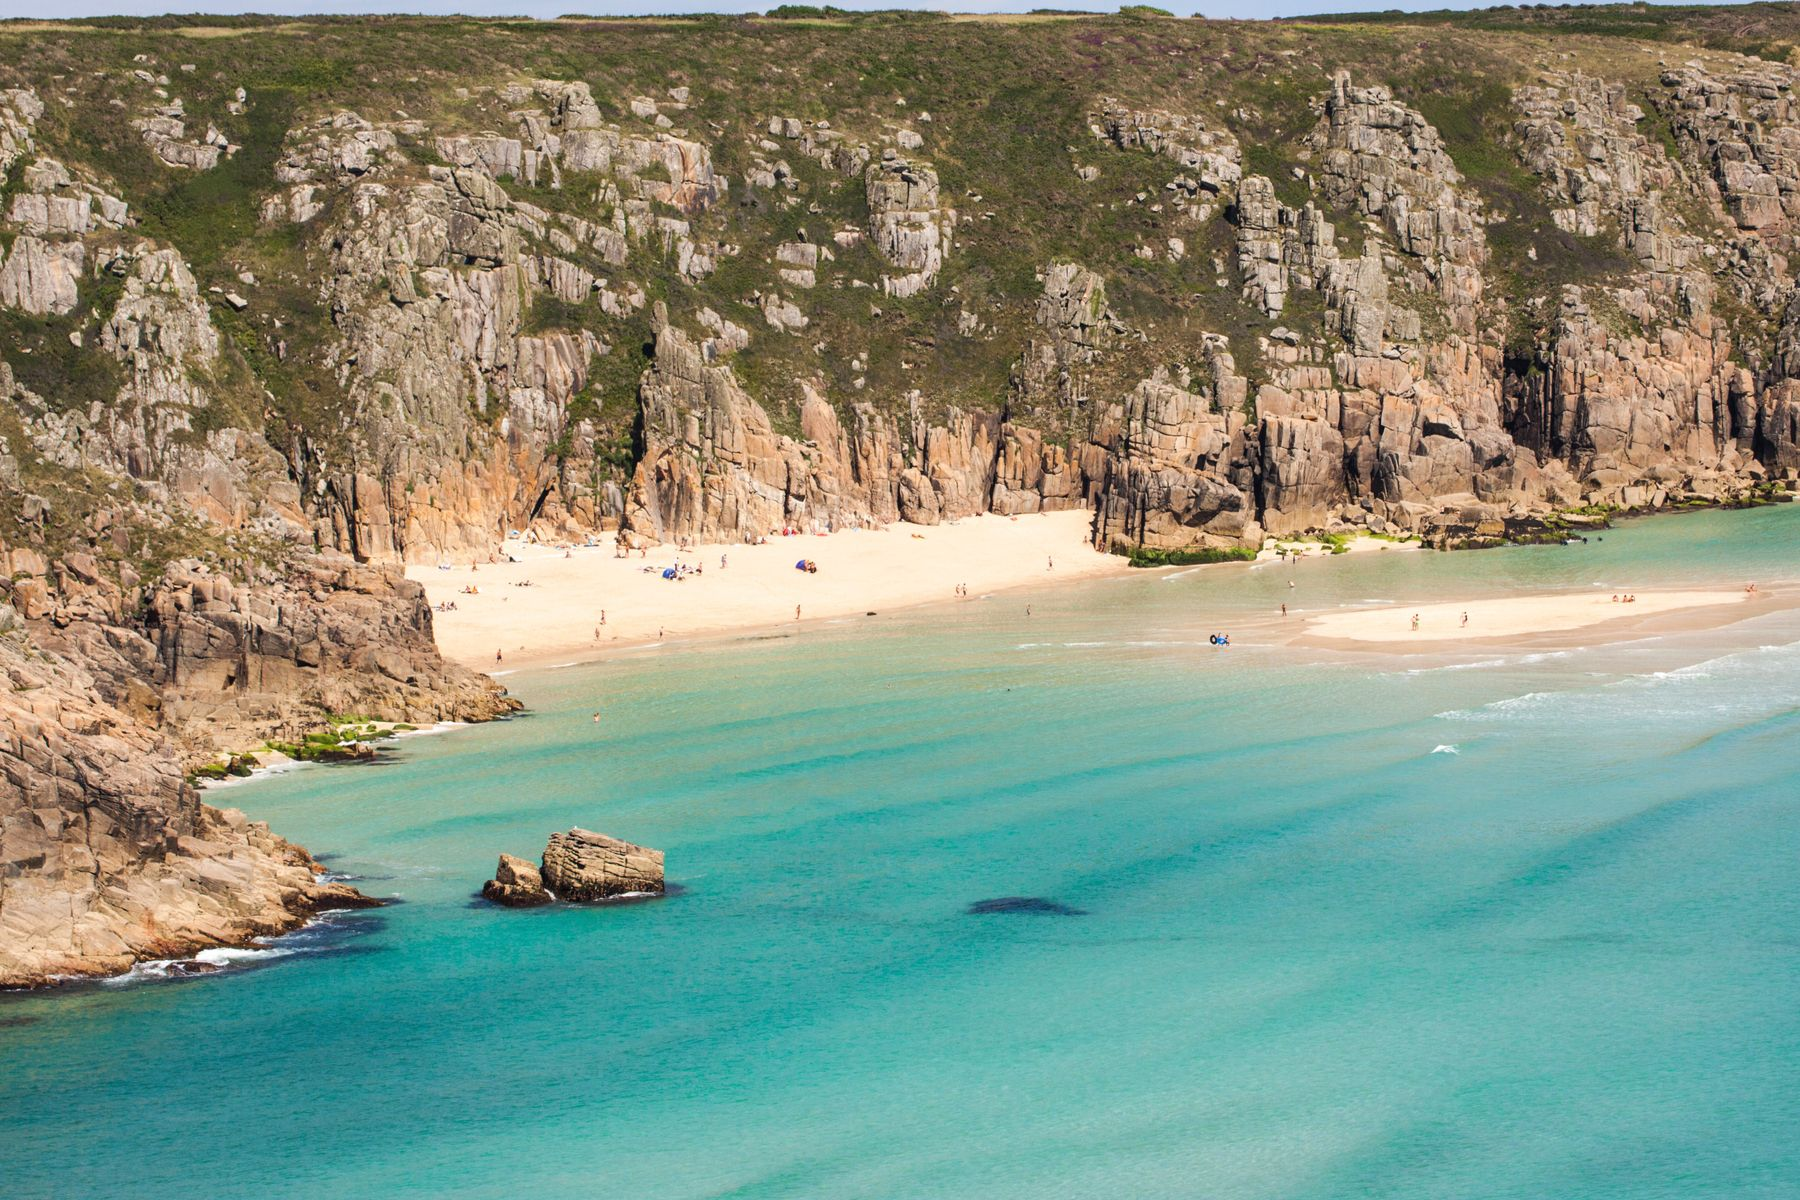 The beautiful white sand at Porthcurno bay, one of Cornwall's most stunning beaches